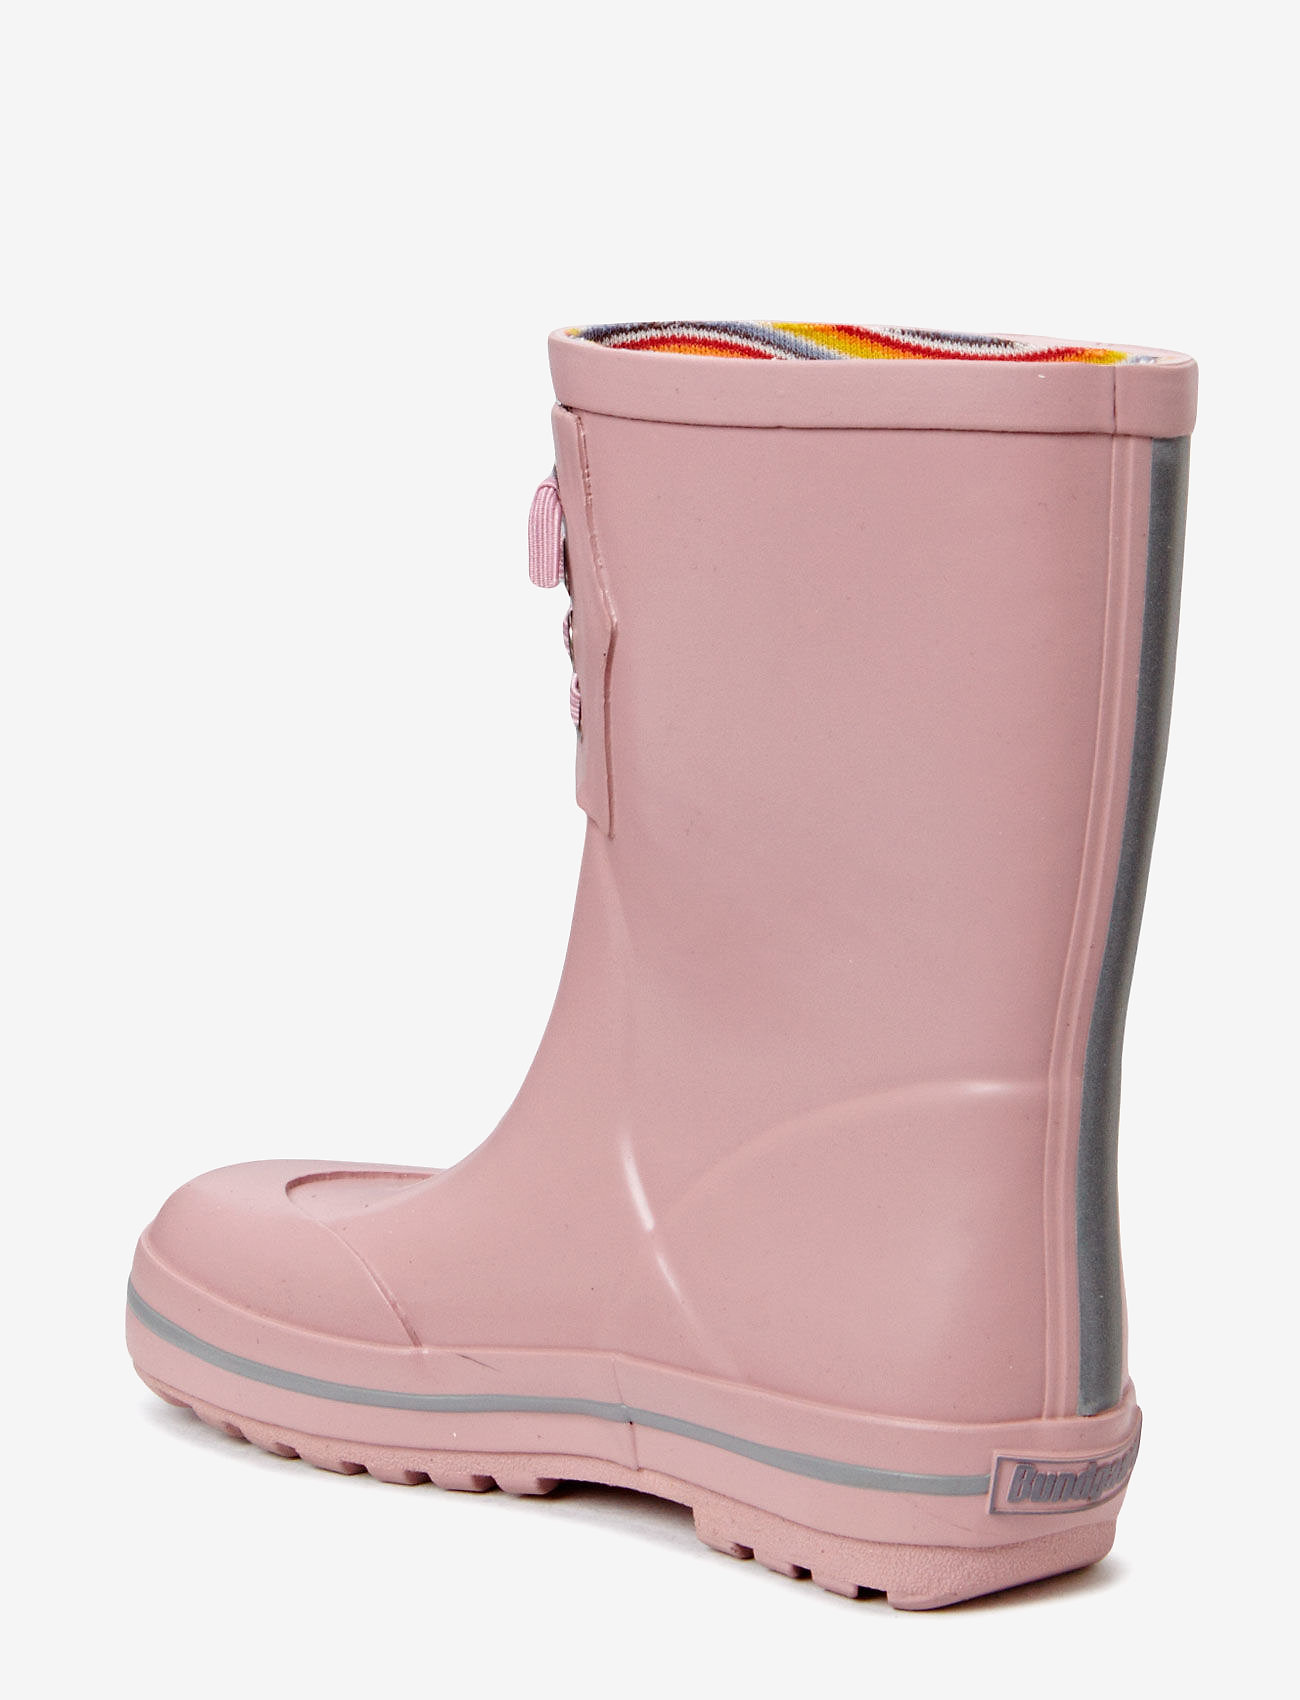 Bundgaard - Classic Rubber Boot Old Rose - rubberboots - old rose